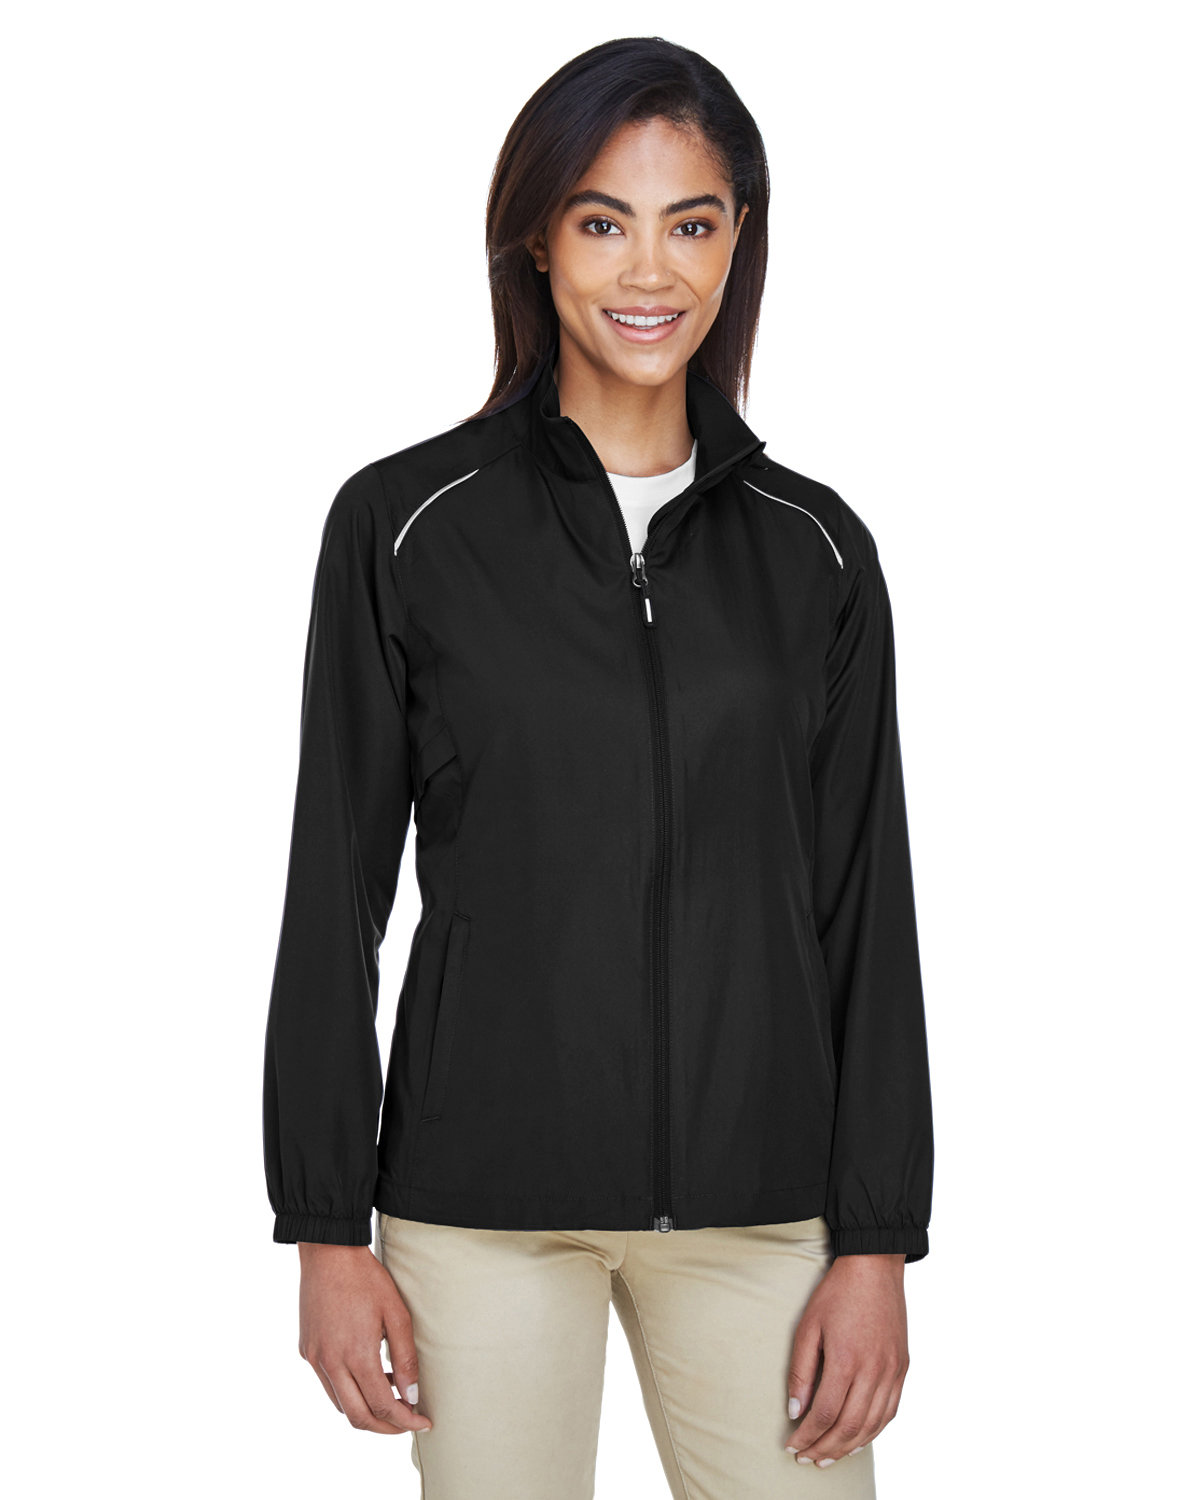 Core 365 Ladies' Motivate Unlined Lightweight Jacket BLACK